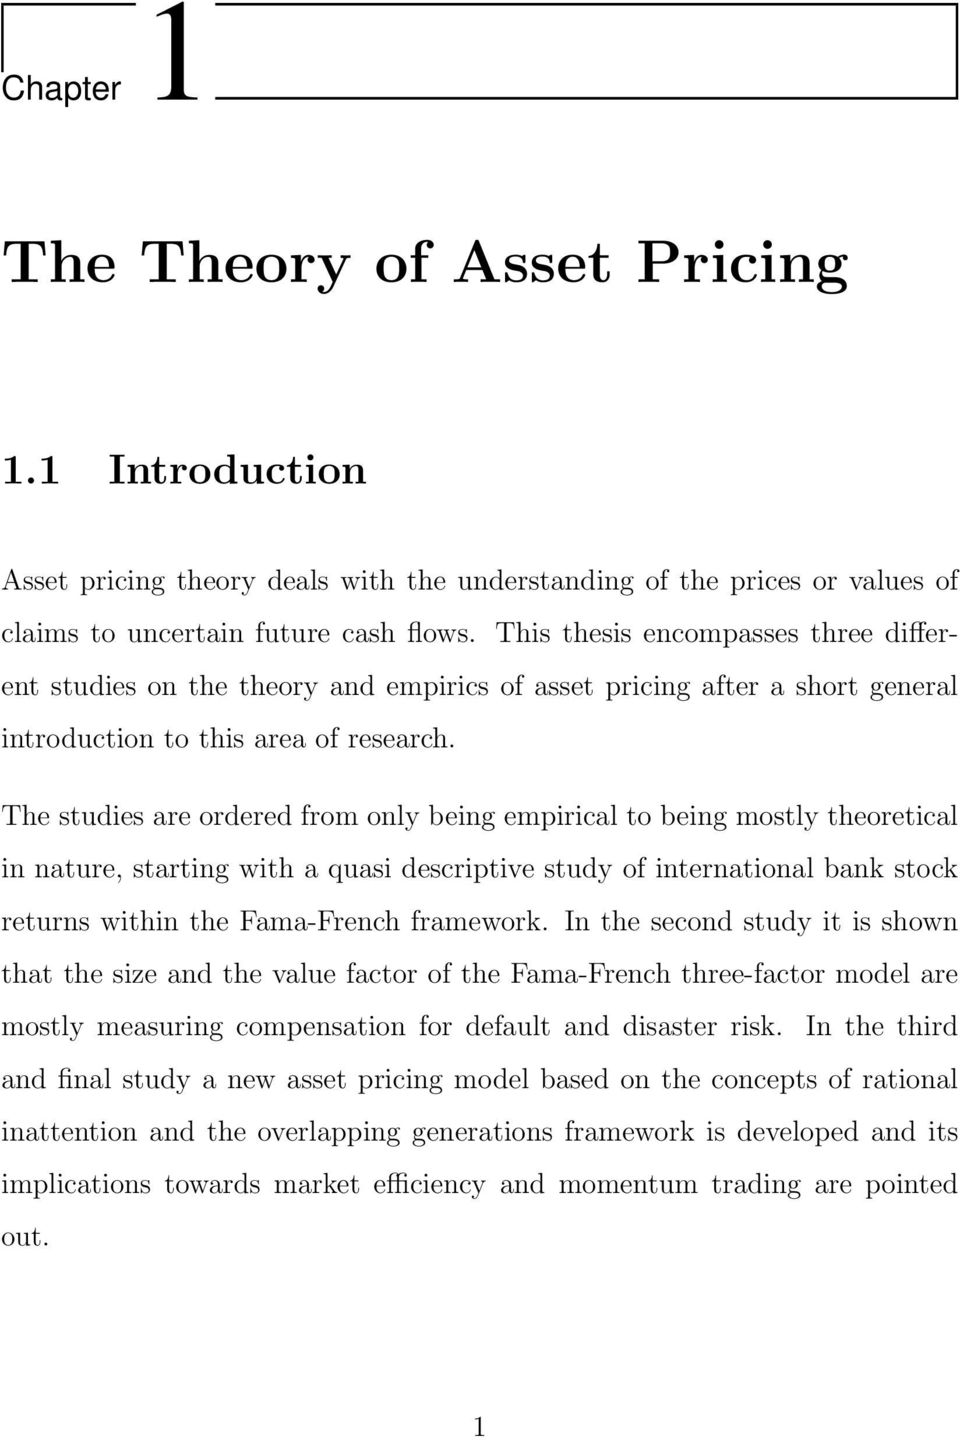 The studies are ordered from only being empirical to being mostly theoretical in nature, starting with a quasi descriptive study of international bank stock returns within the Fama-French framework.